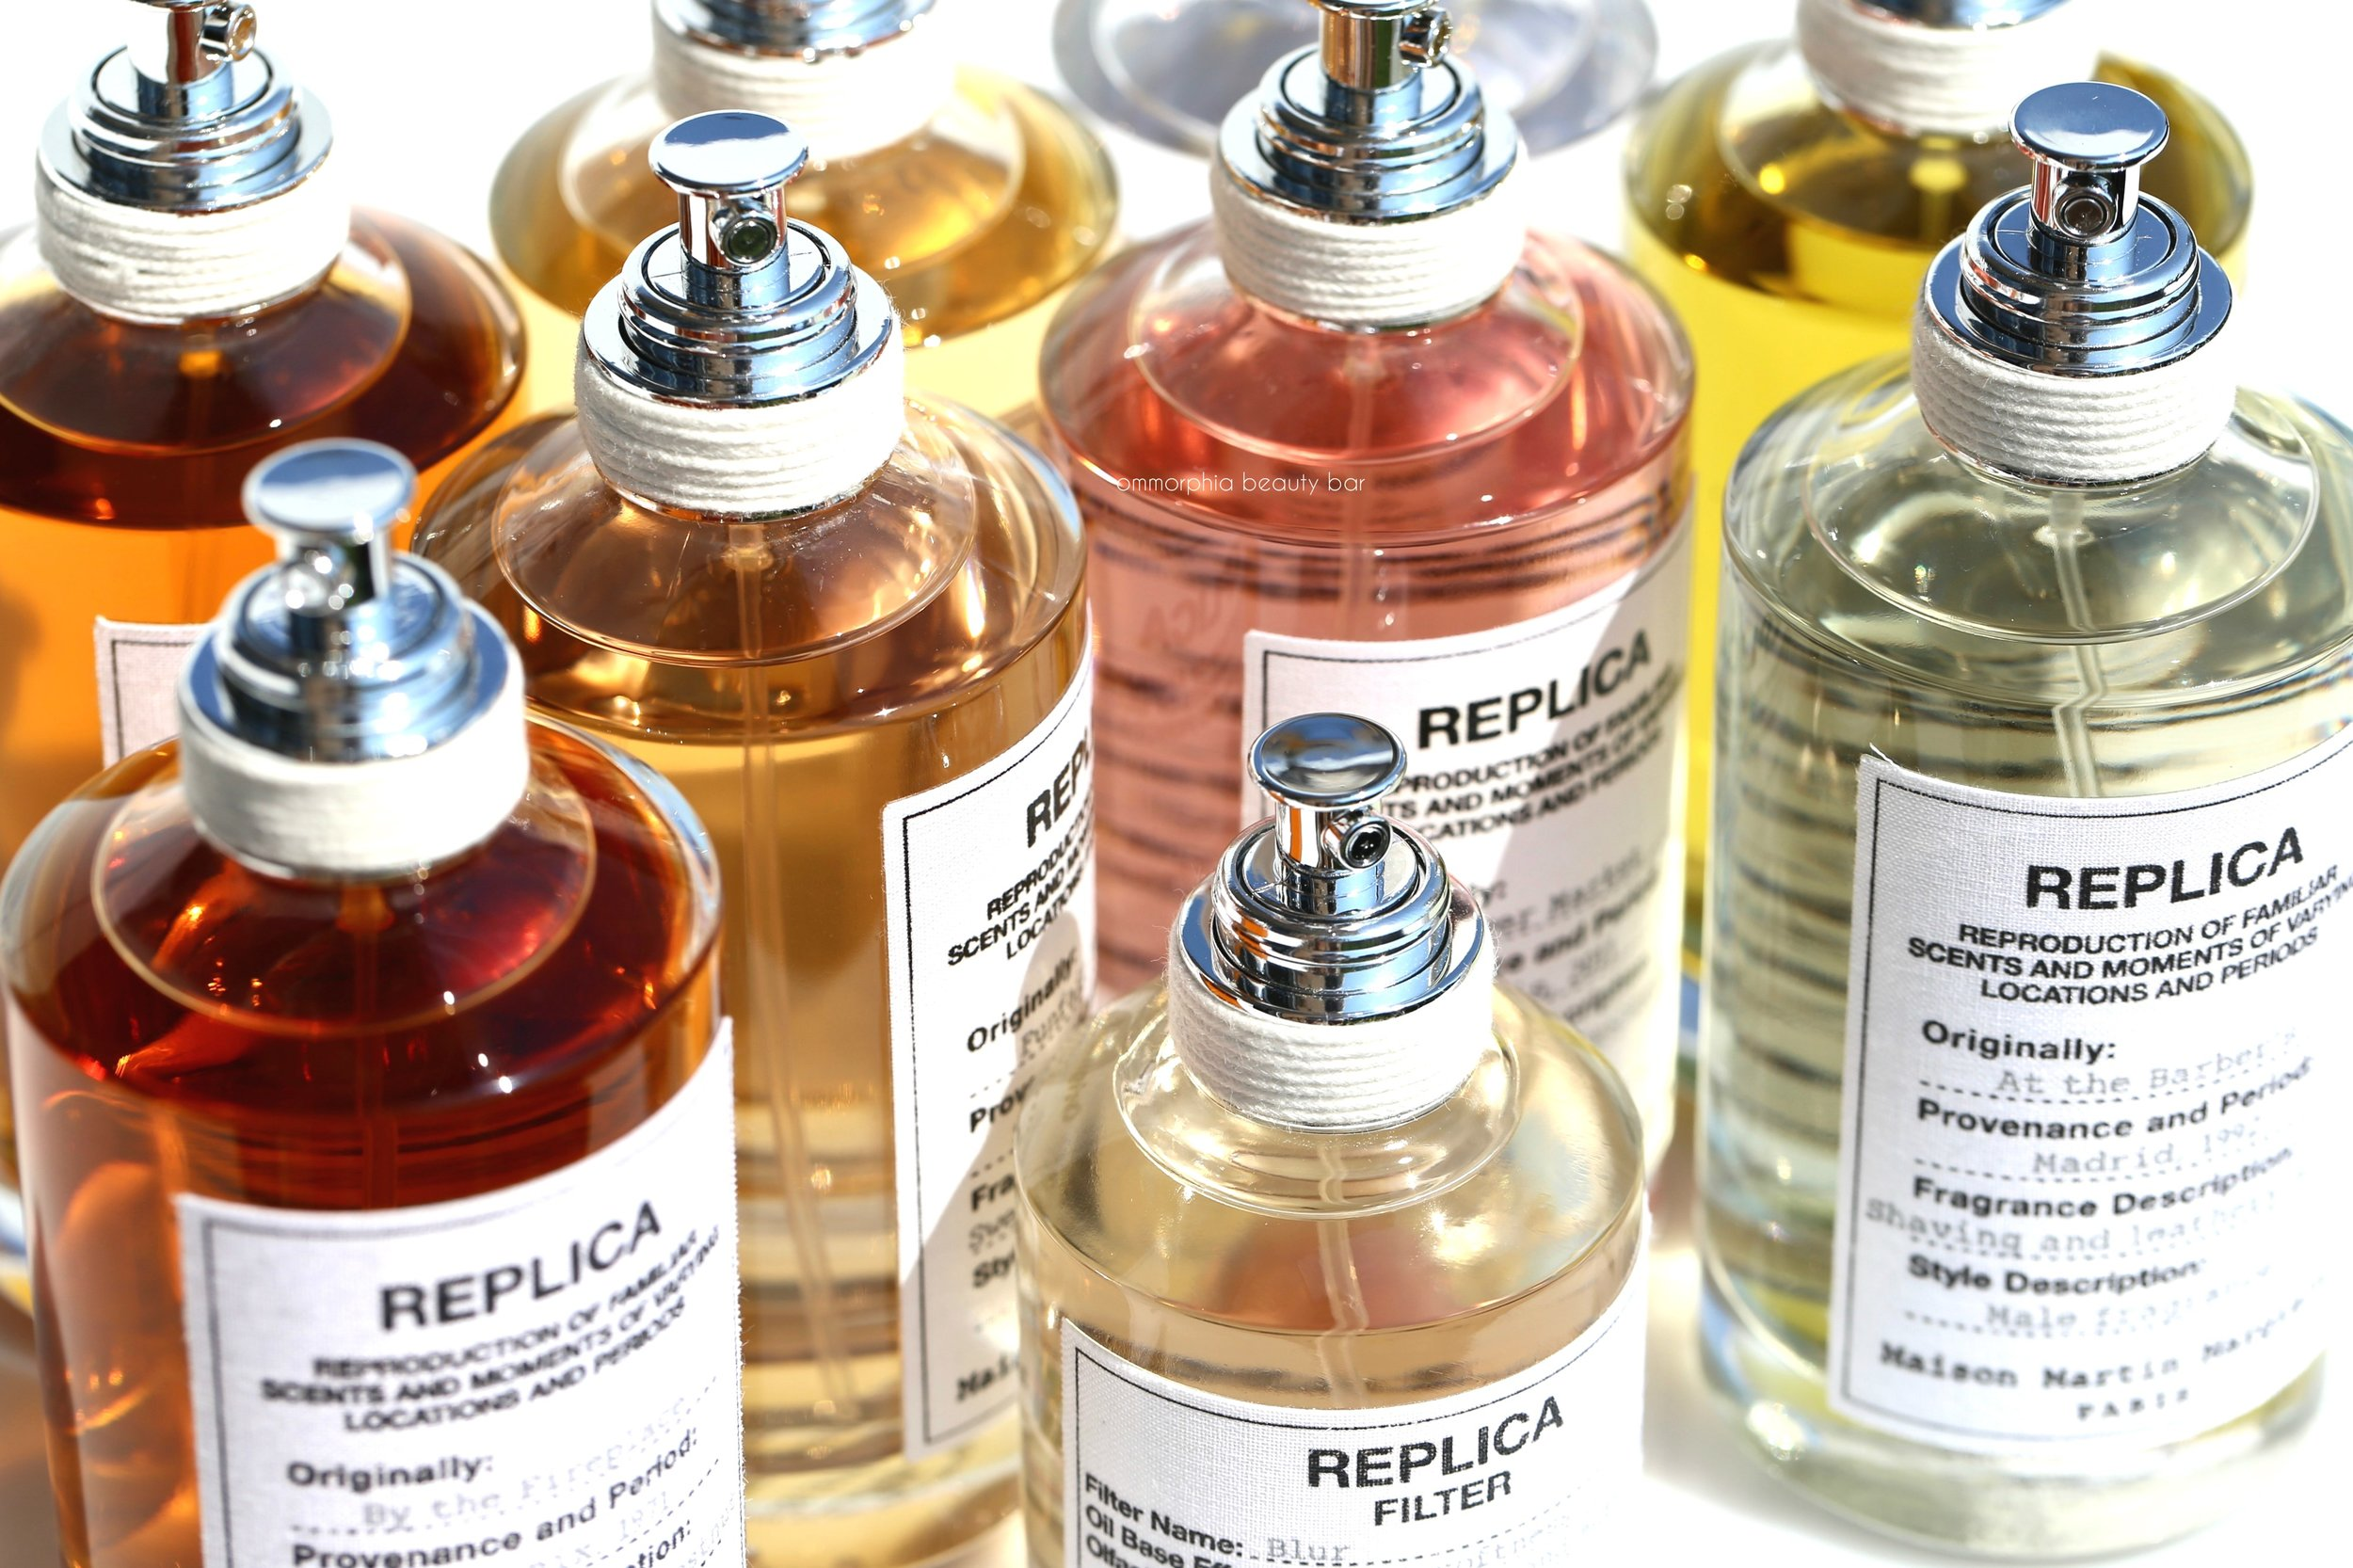 Replica-fragrances-and-Blur-closer.jpg